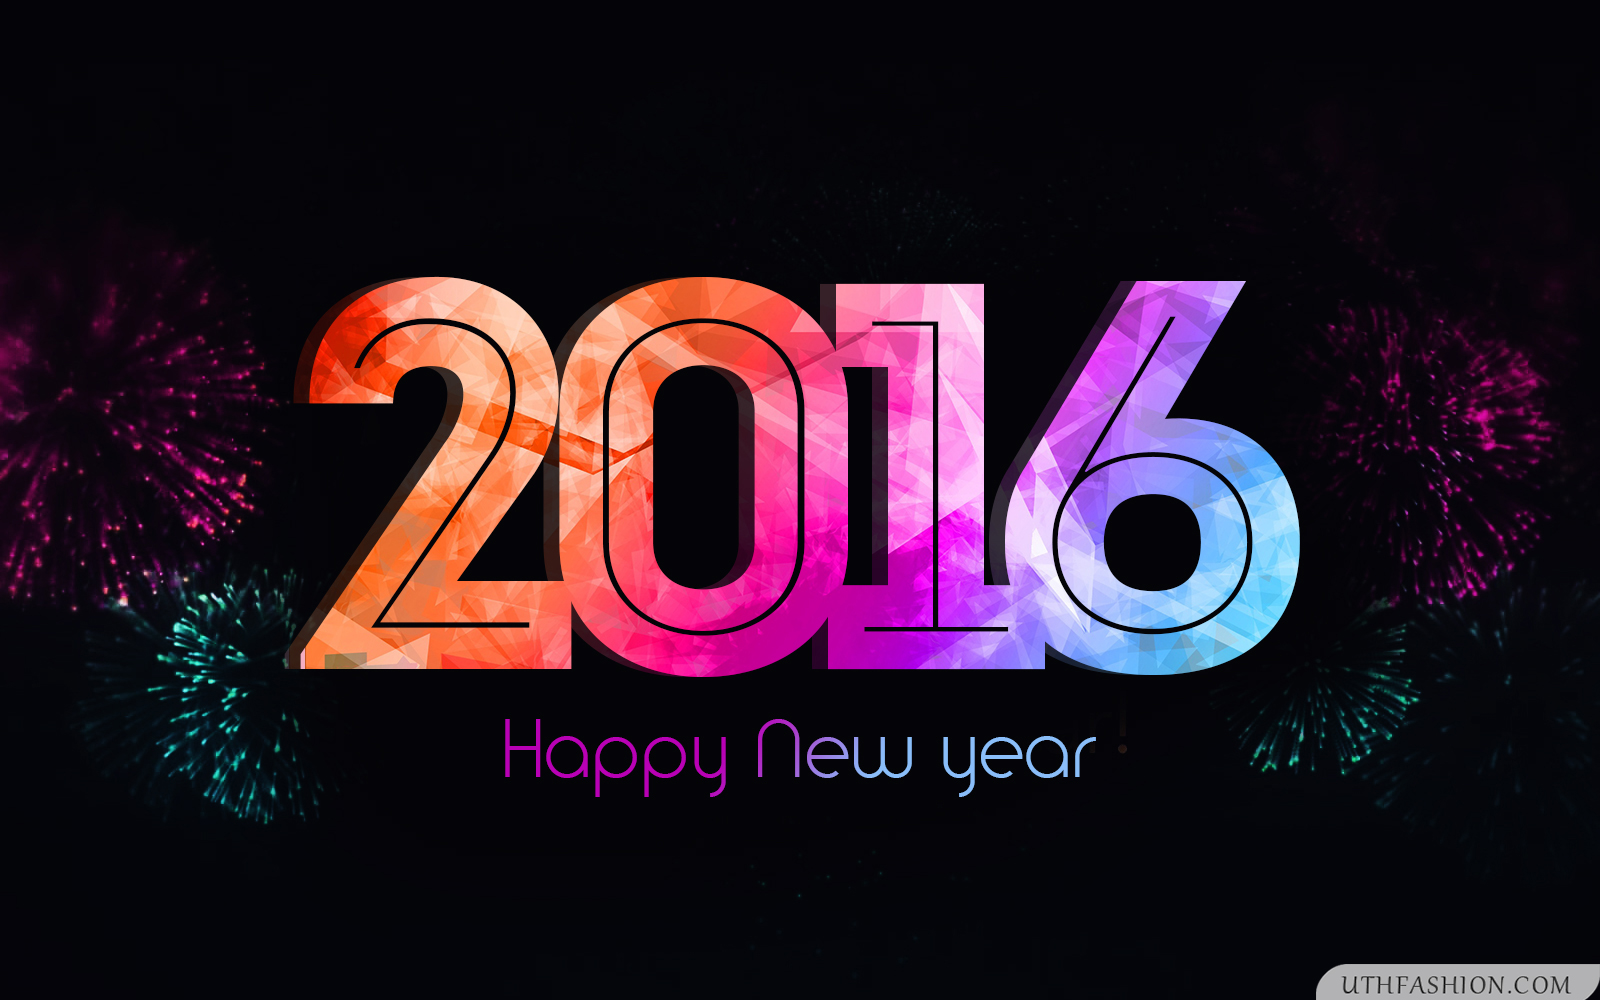 New Year 2016 Wallpapers Holiday Hq New Year 2016 Pictures 4k